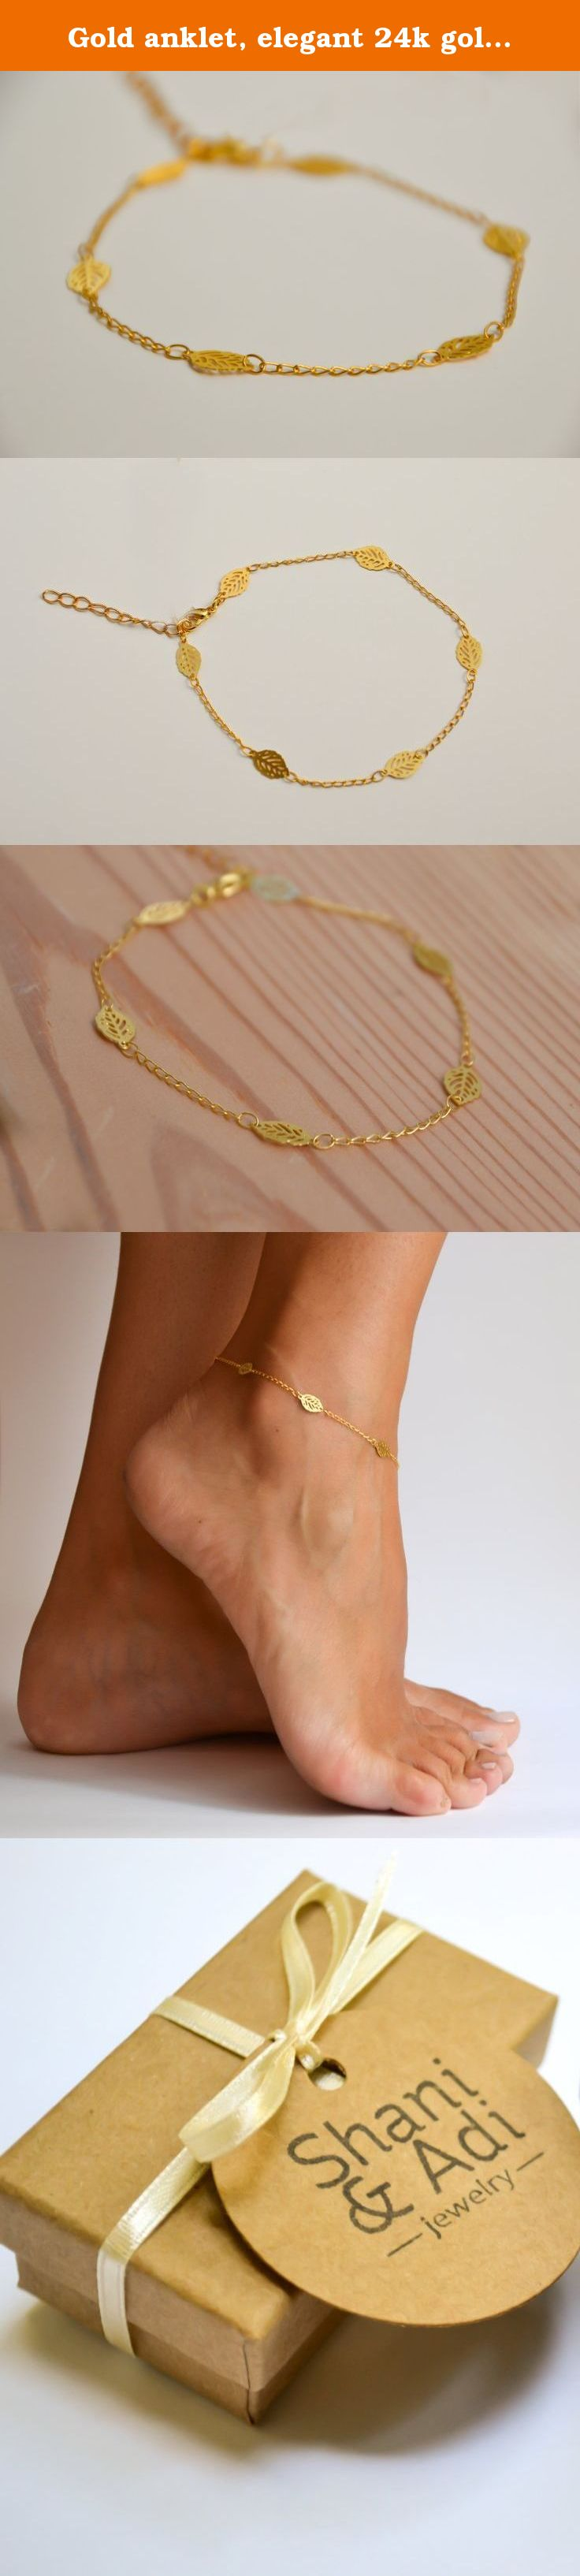 meira jewelry ankle white with bracelet gold t s anklet charms whitegold bracelets lyst star women diamond and moon yellow